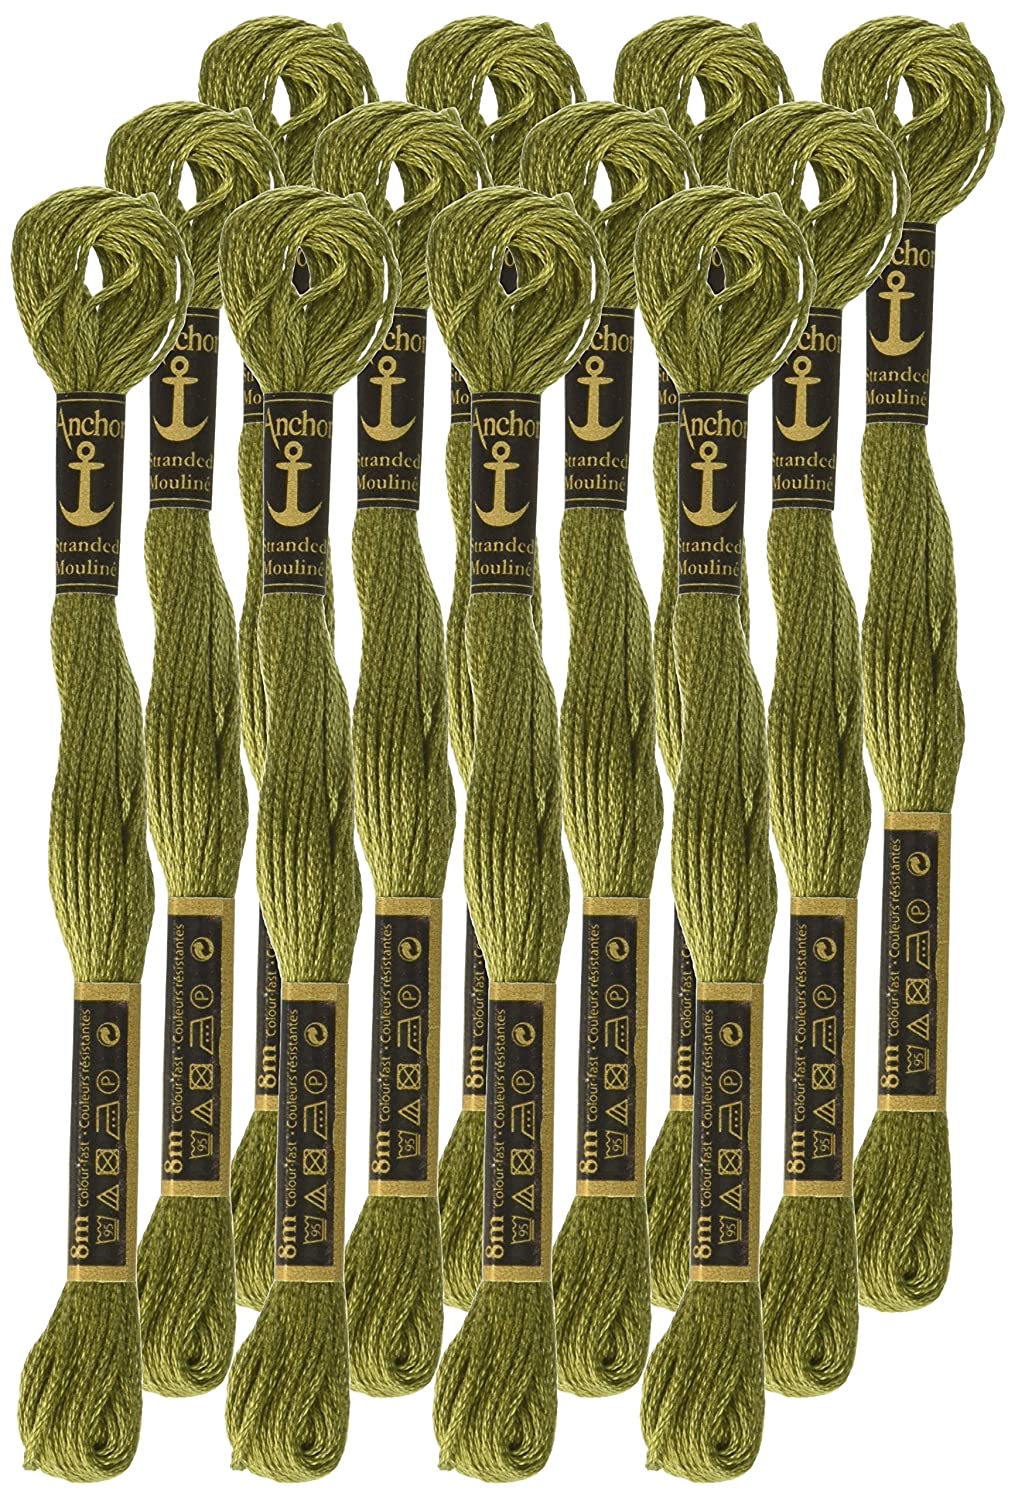 Anchor Stranded Cotton 8m Colours 254-266 100% Cotton Embroidery Thread Skeins Art & Craft Supplies